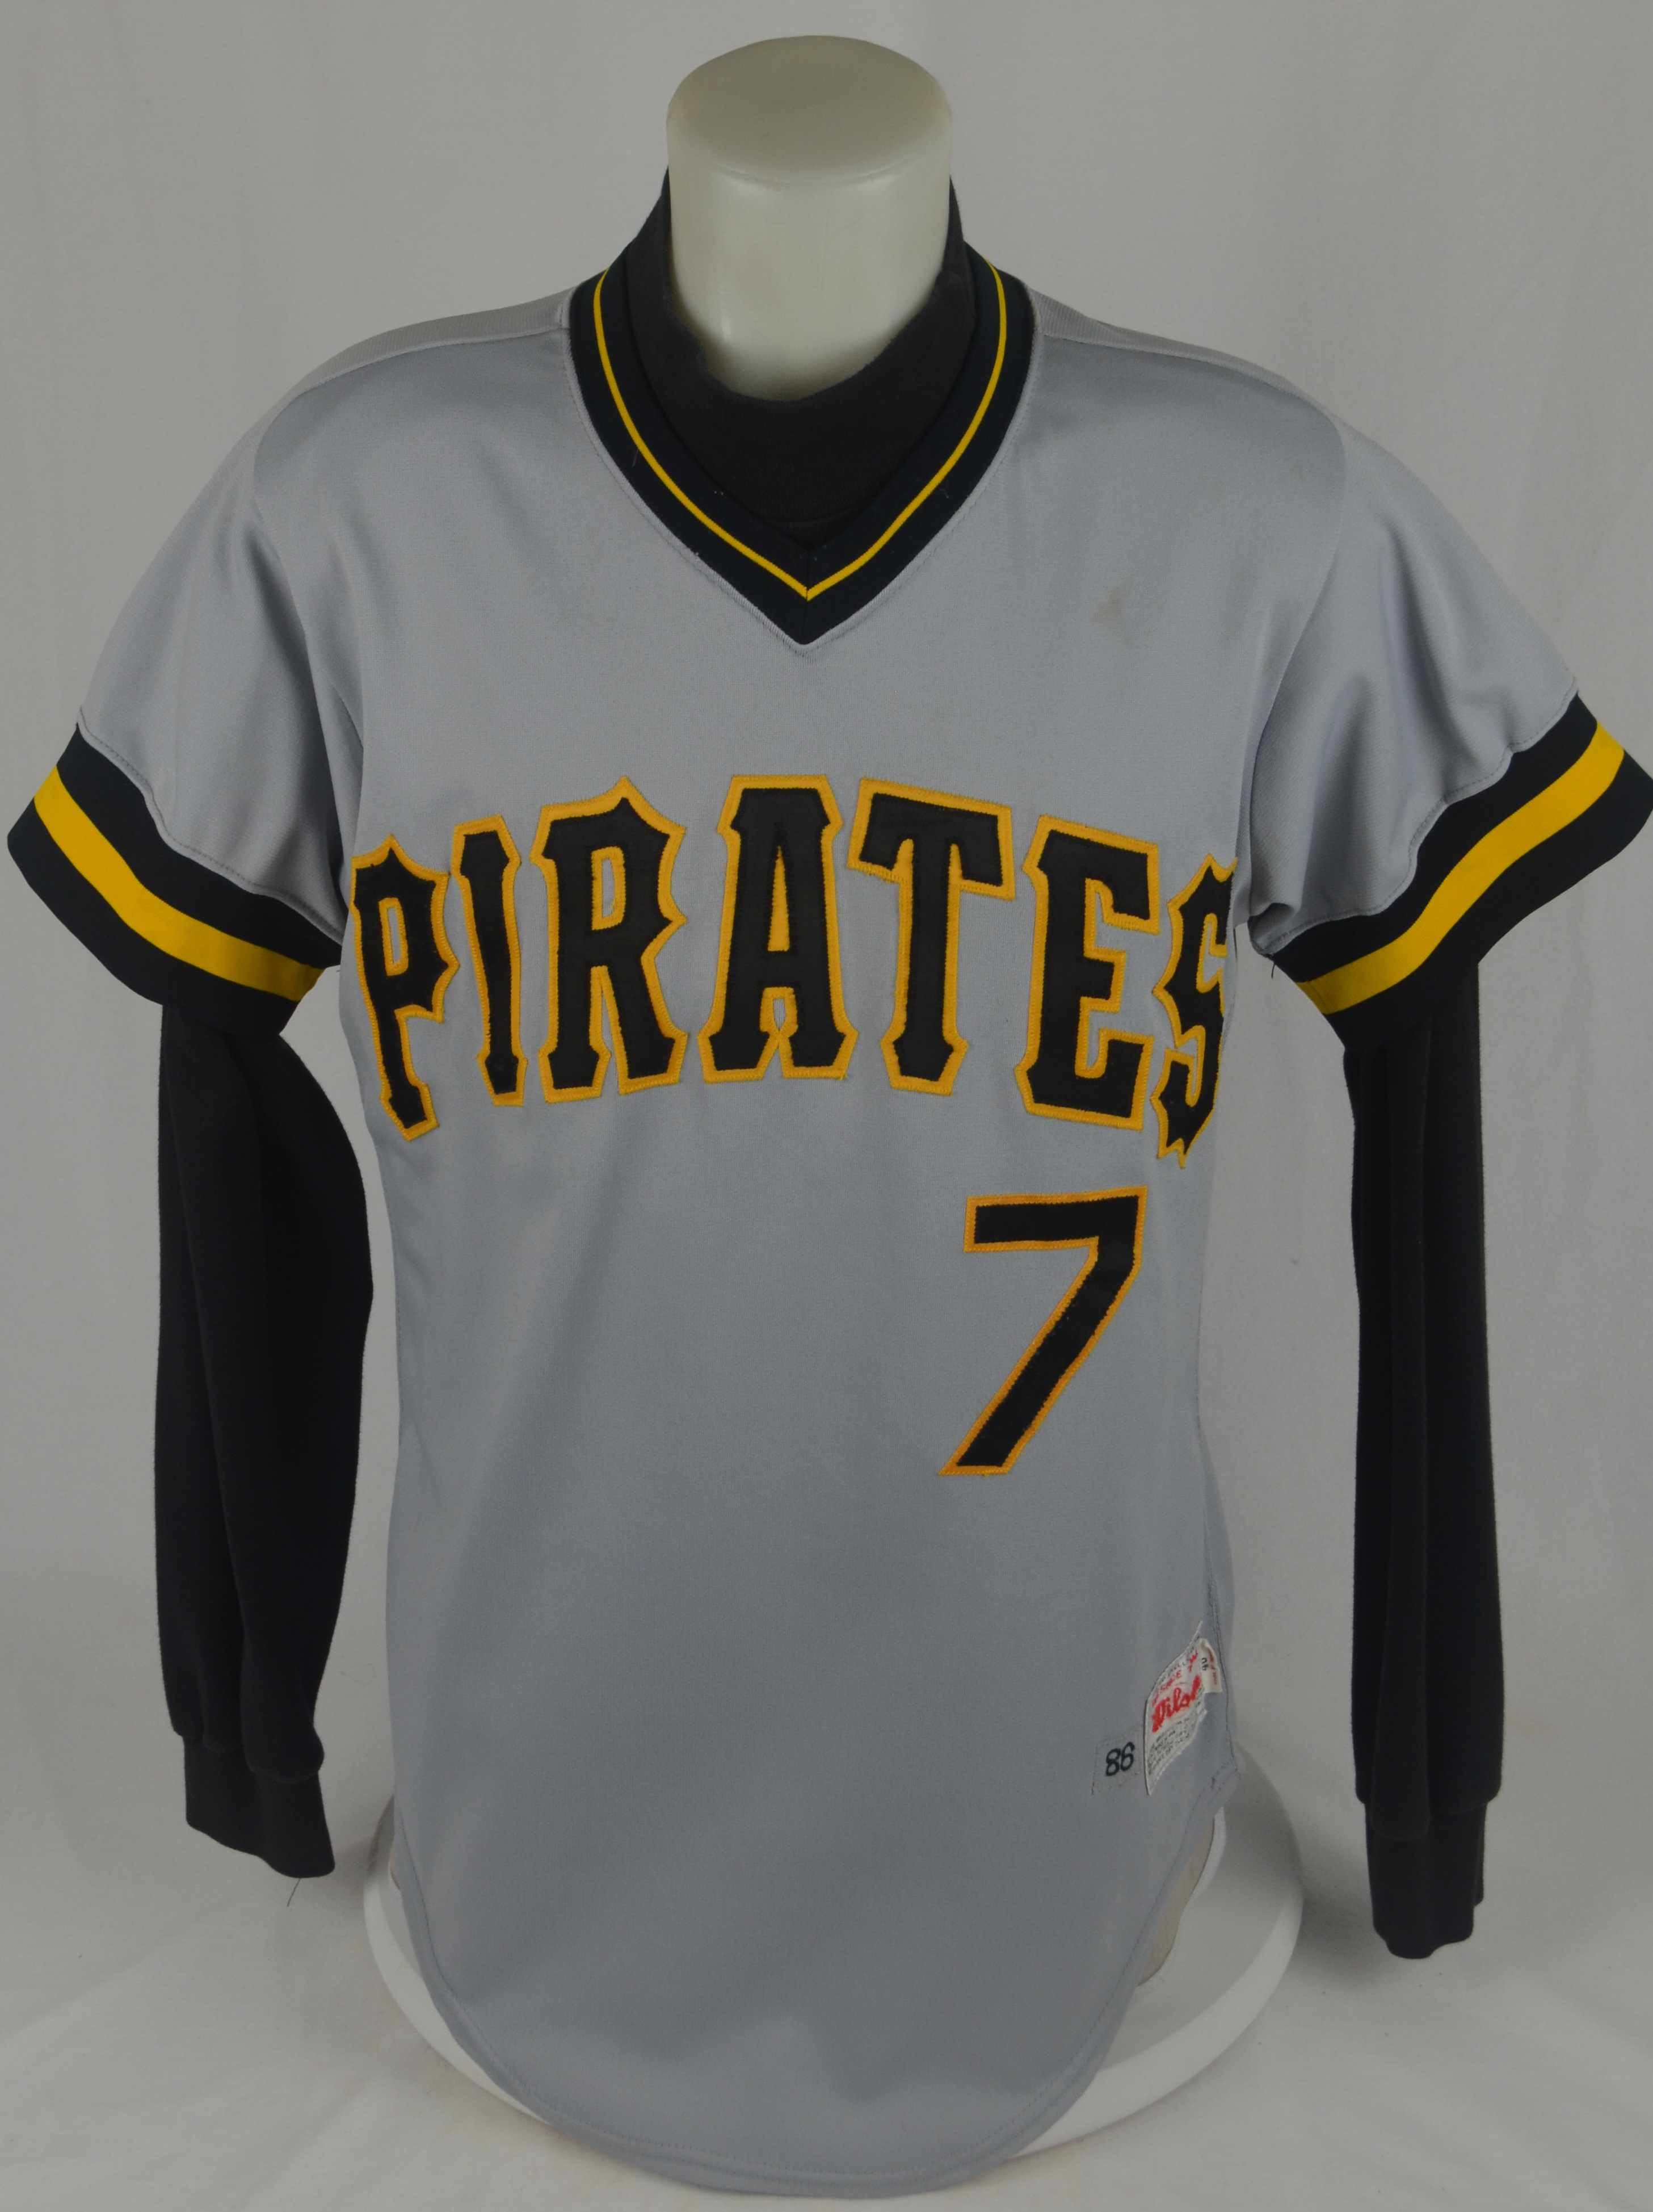 sale retailer 1e55b 7a47d Lot Detail - Barry Bonds 1986 Pittsburgh Pirates Game Used ...